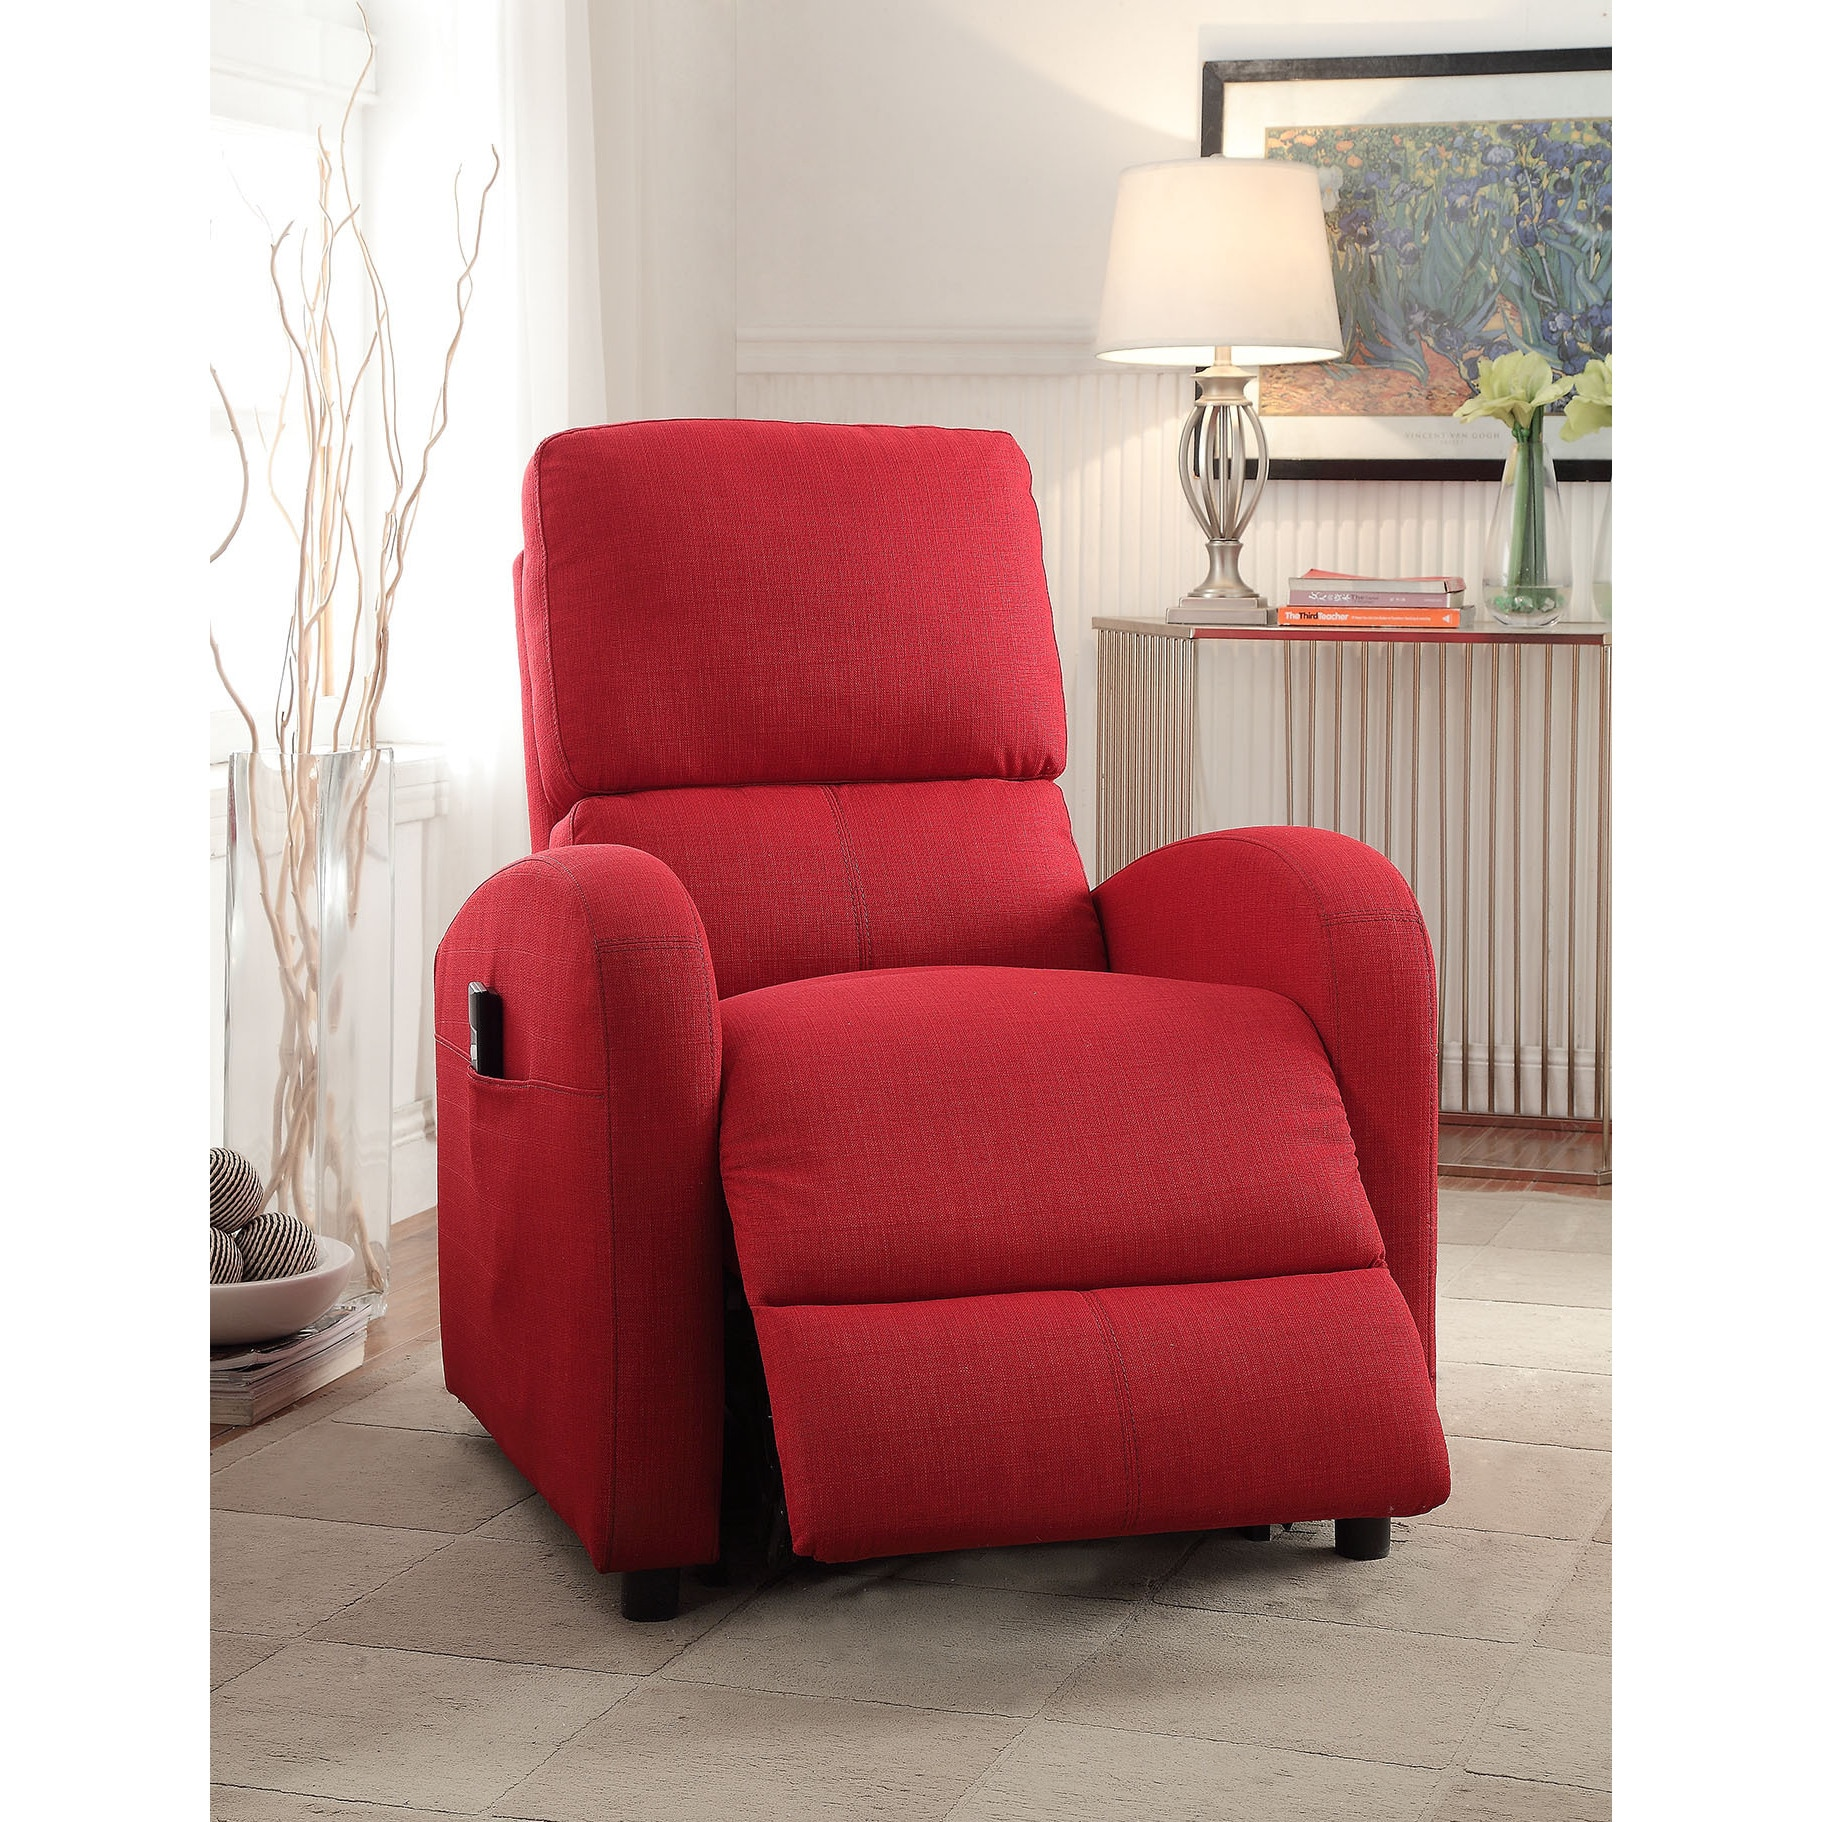 ACME Croria Red Fabric Power Life Recliner (Red Fabric, 2...